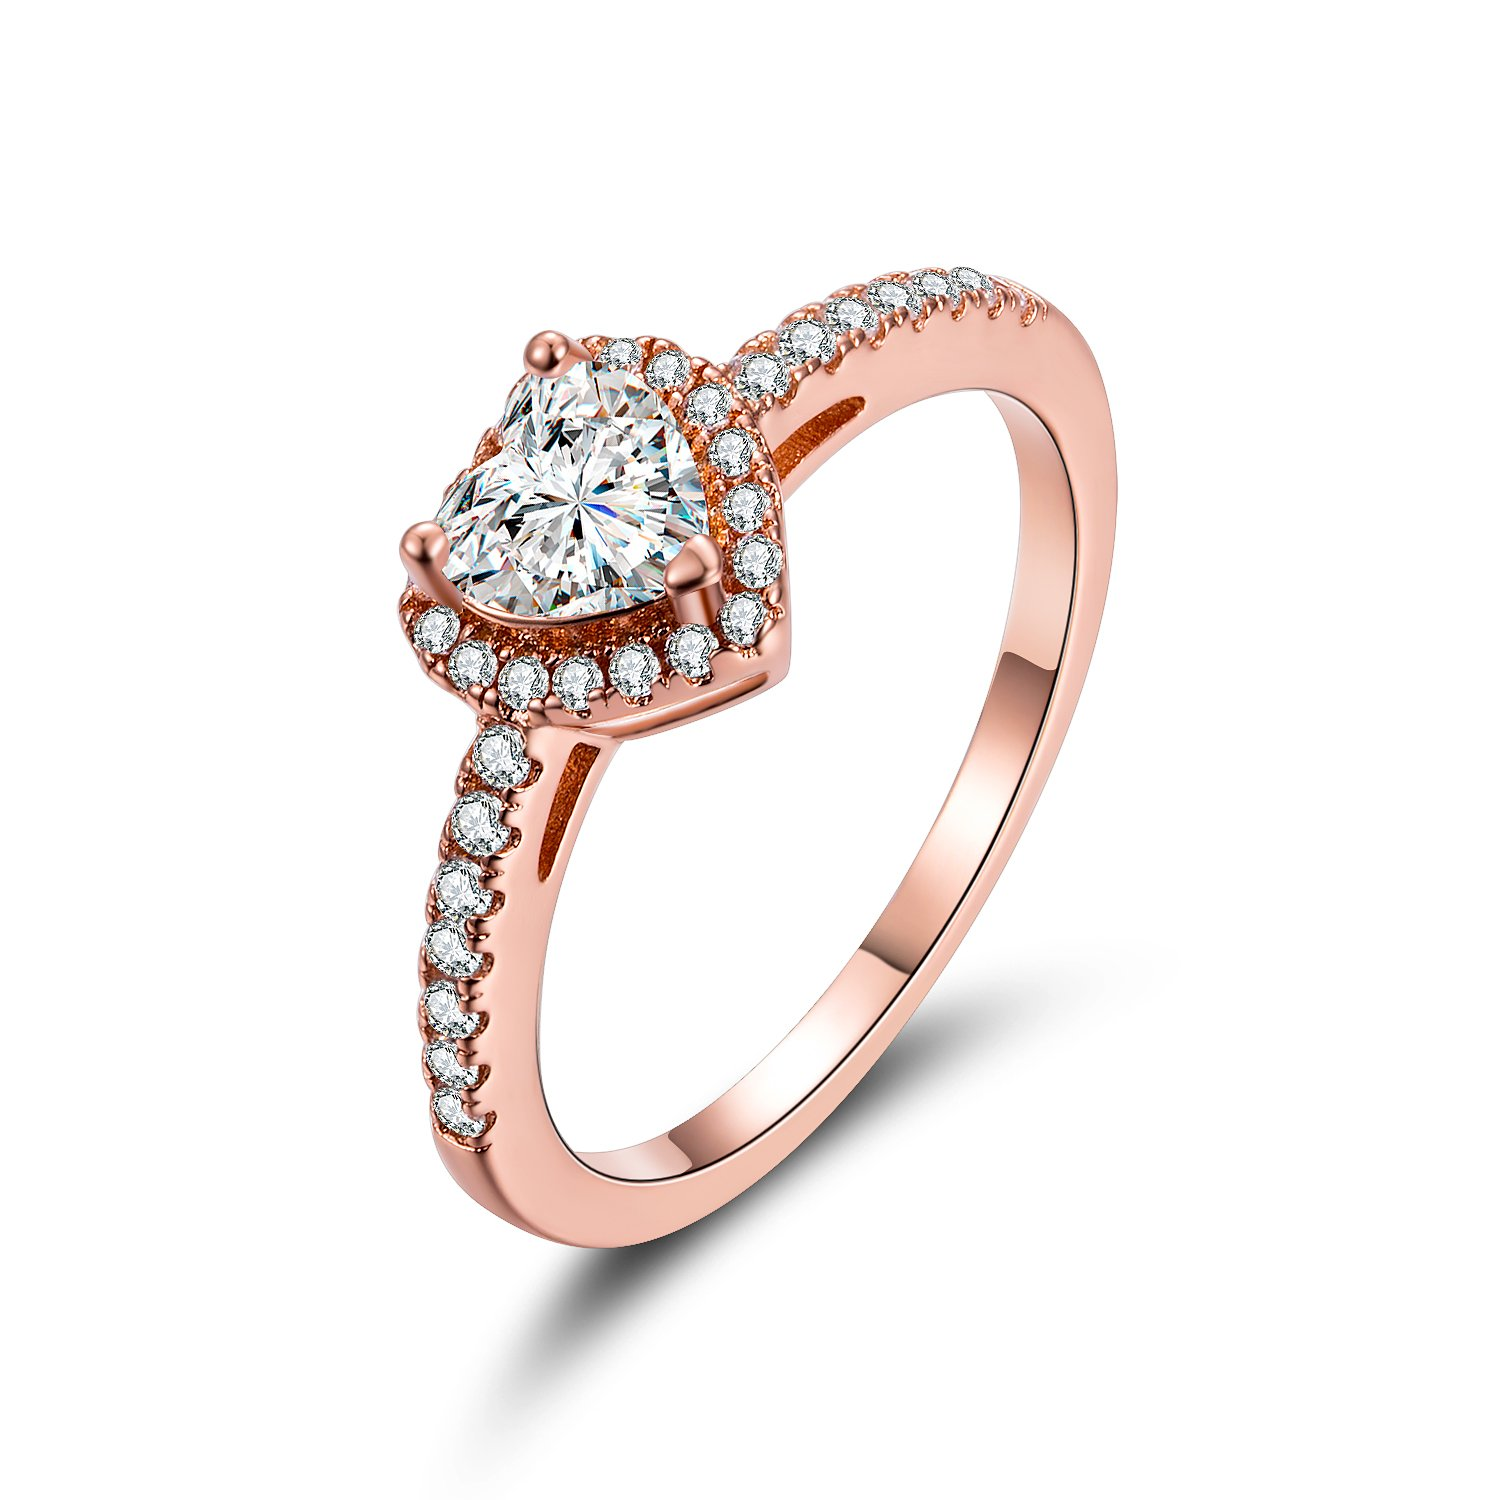 MDFUN Luxurious 18K Rose Gold Plated Cubic Zirconia Infinity Love Solitaire Promise Eternity Ring (5)